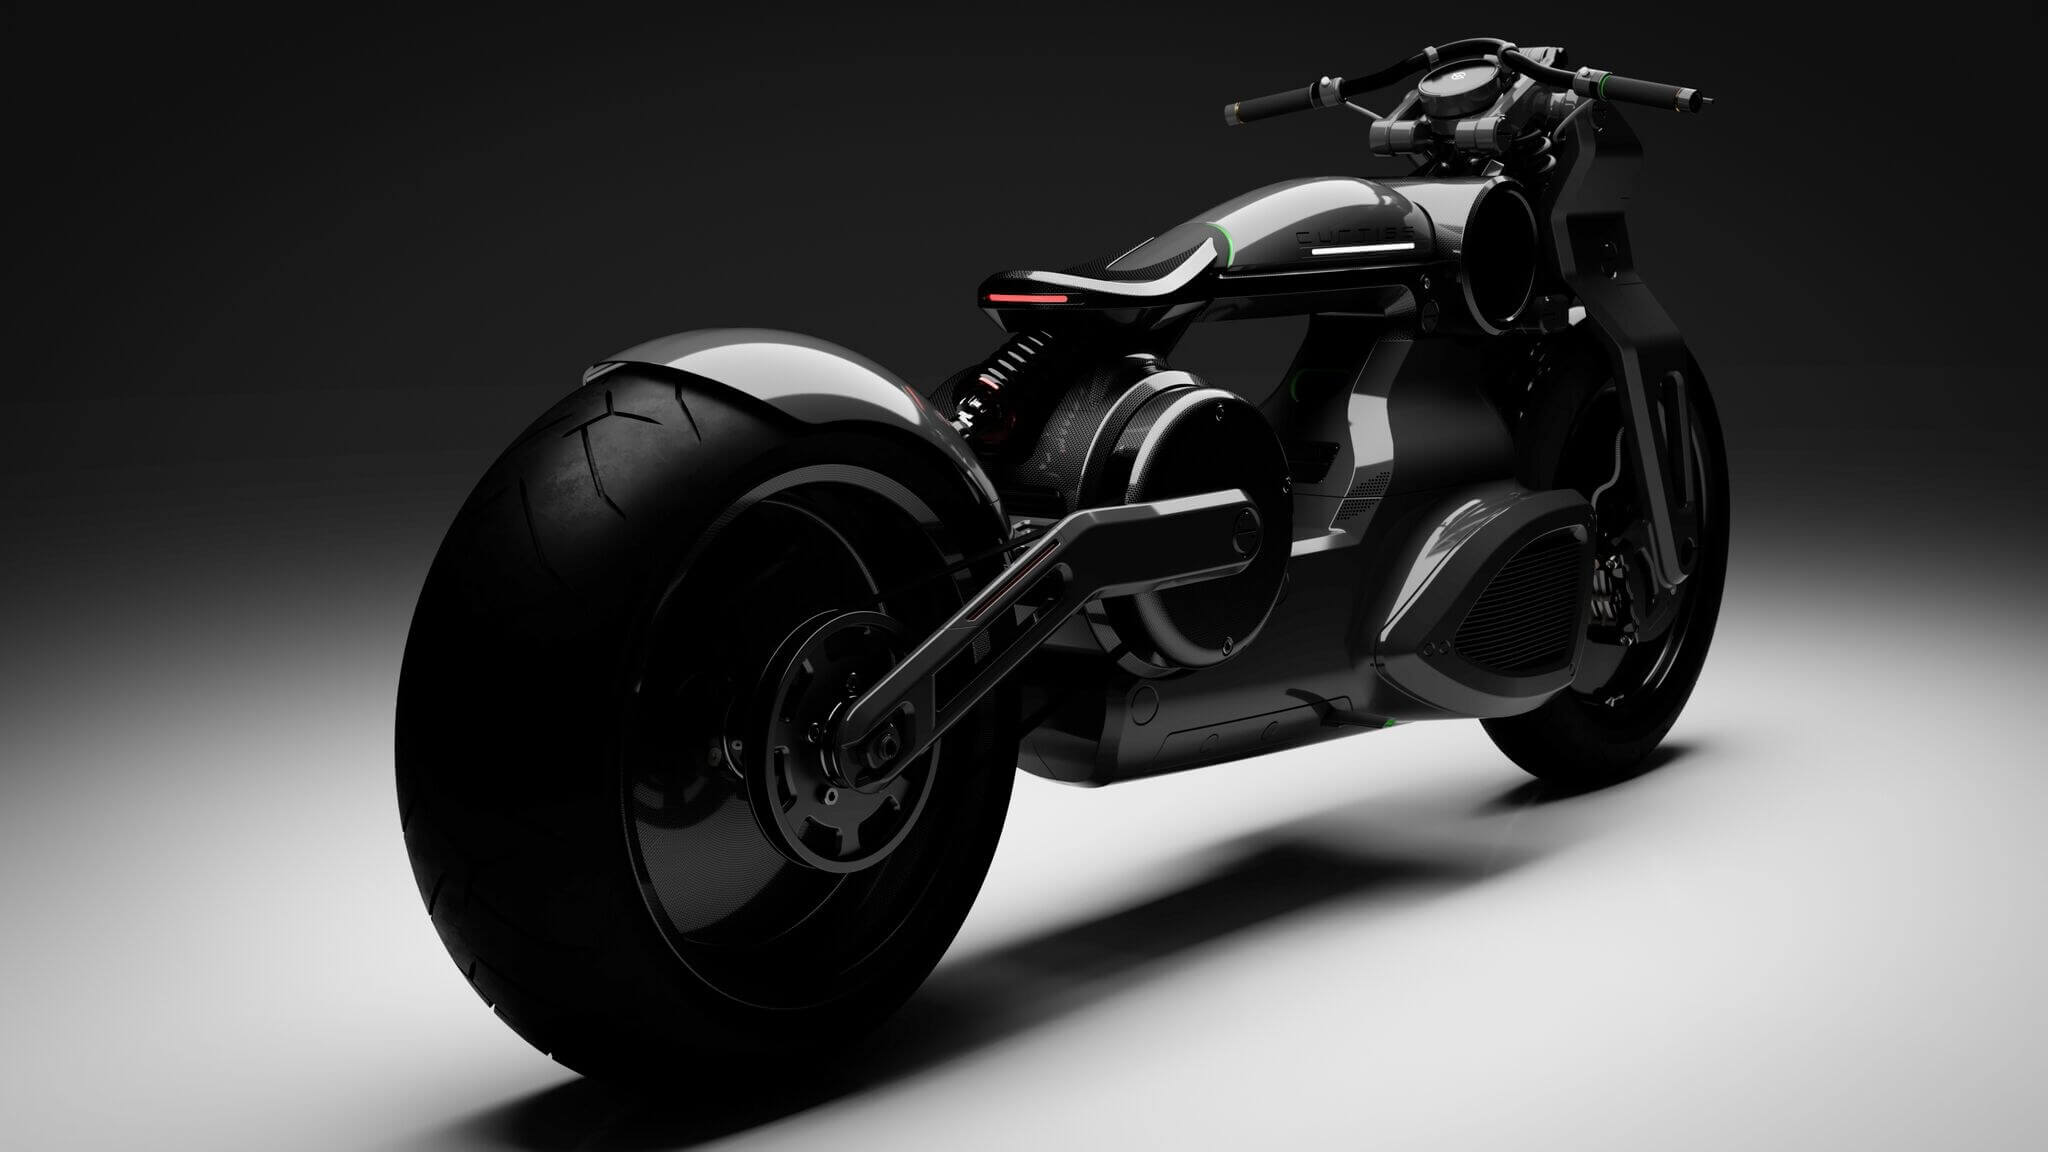 Curtiss unveils its 'Zeus' electric motorcycles, capable of